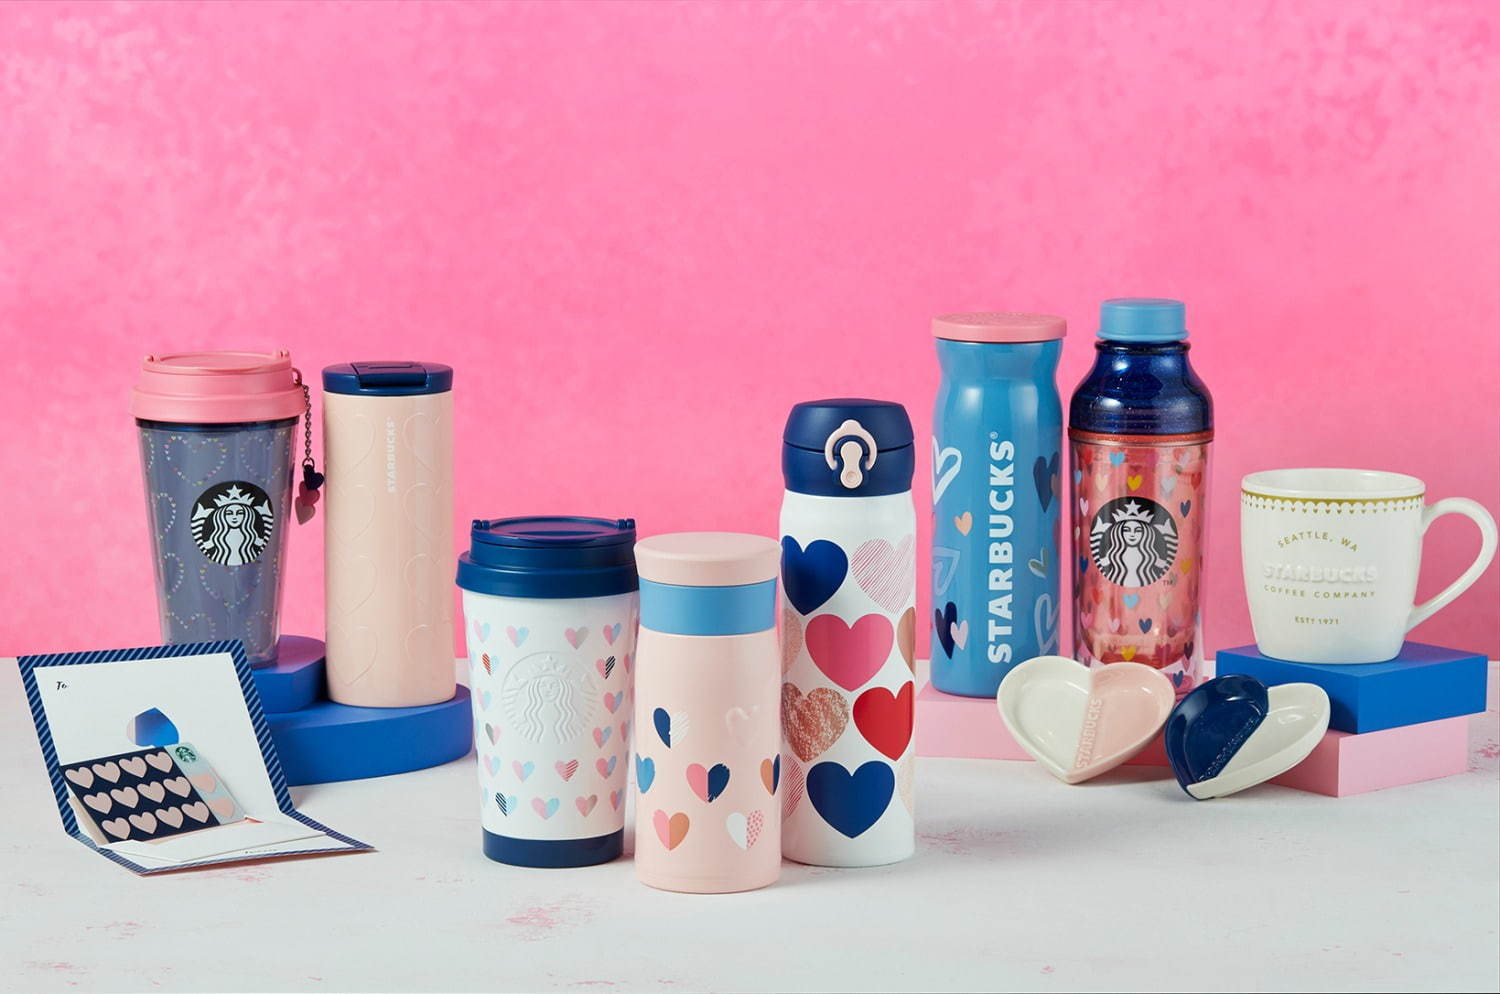 Starbucks Japan Valentine's Day Tumblers and Mugs 2020